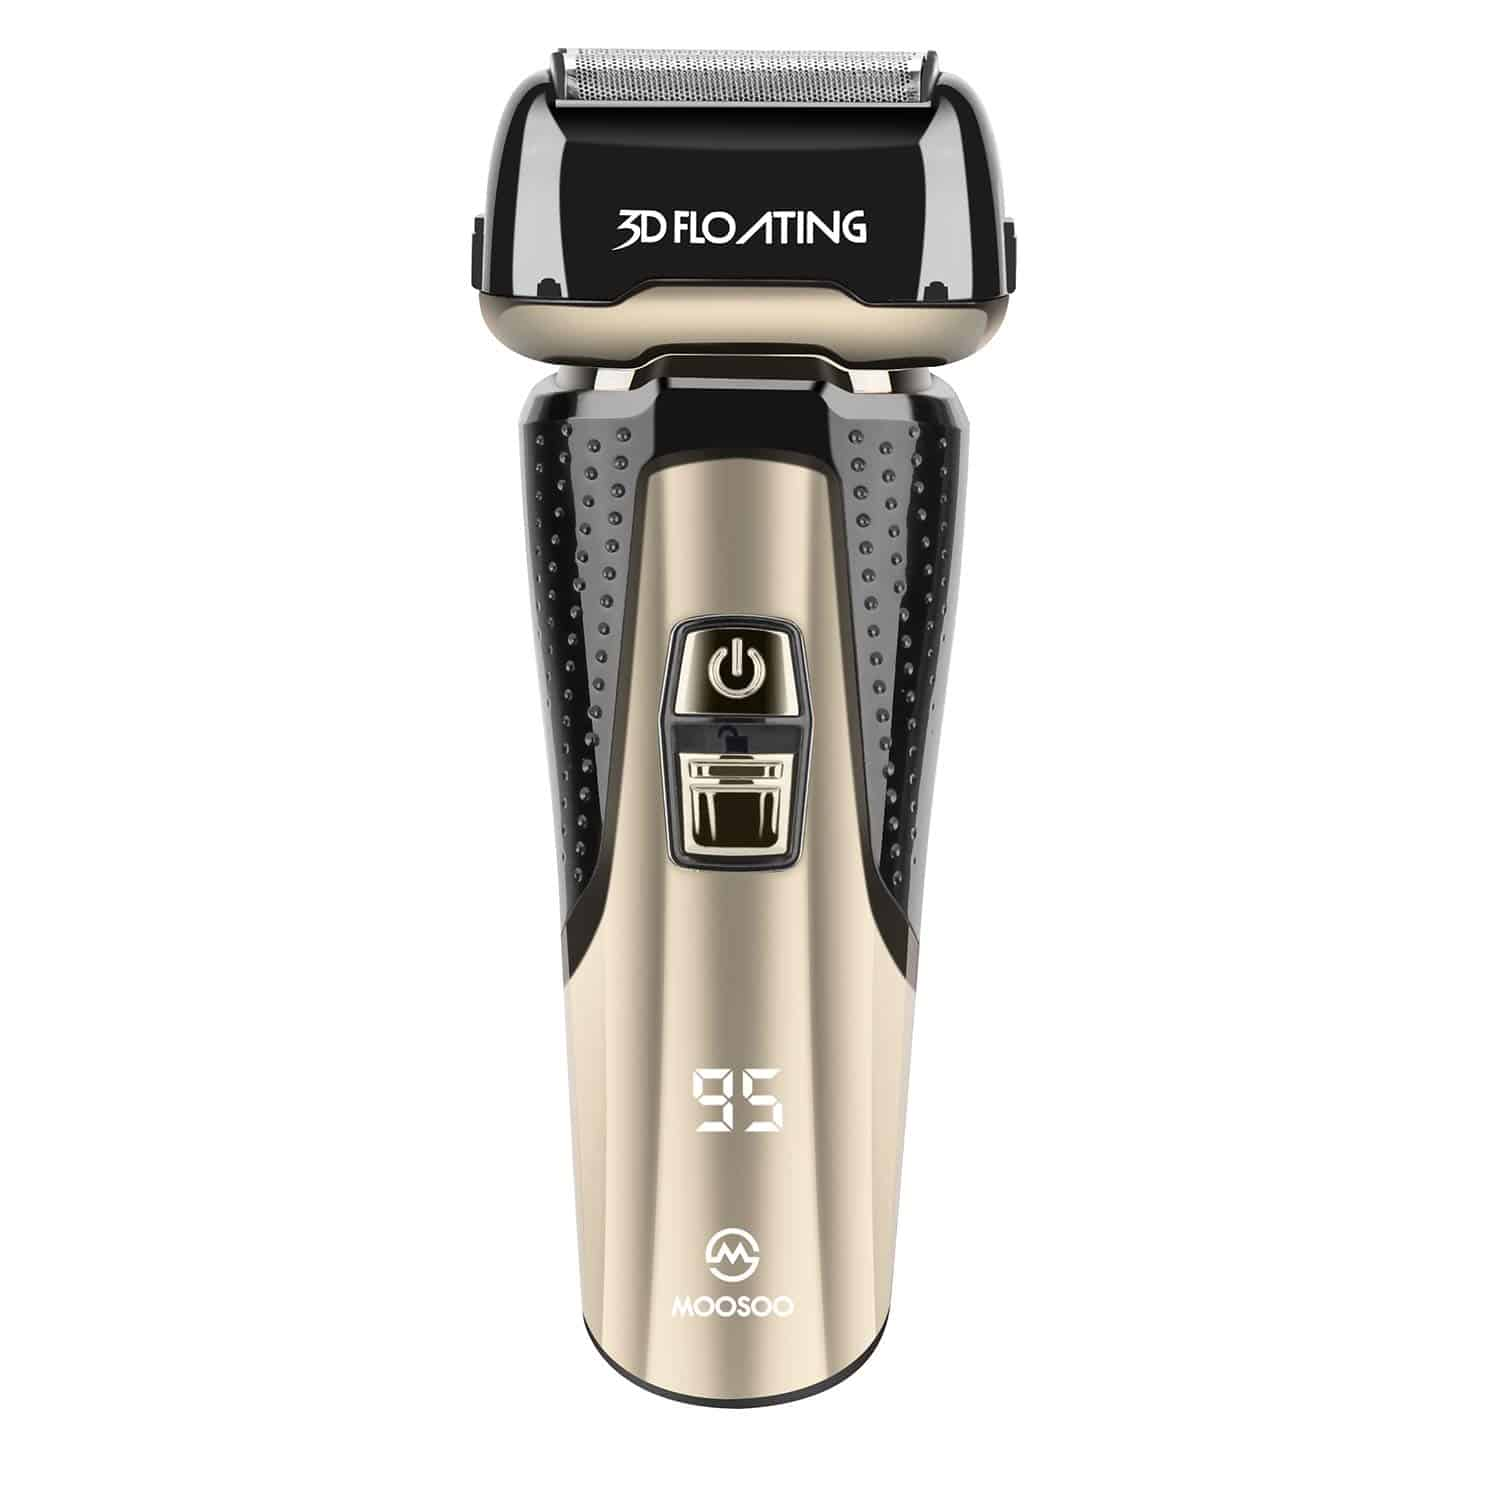 MOOSOO M Electric Shaver